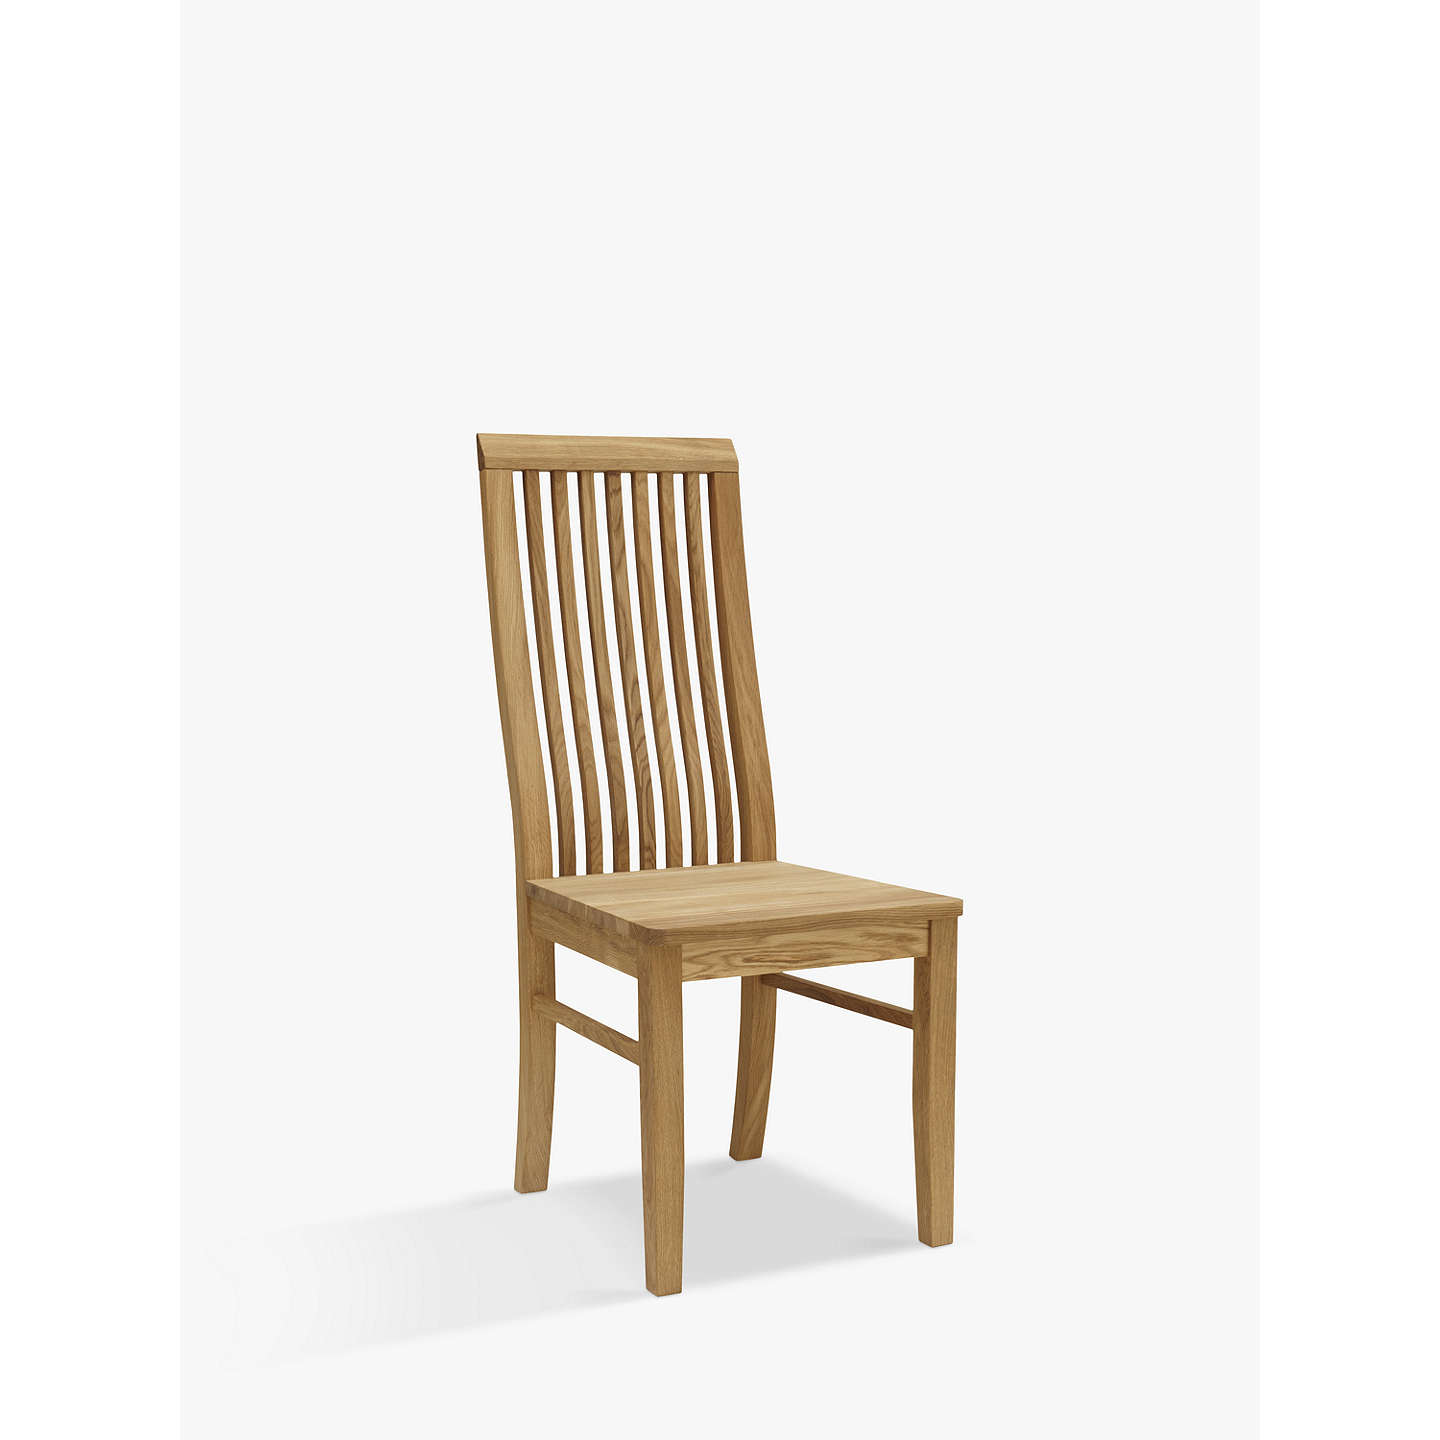 BuyJohn Lewis Henry Wooden Seat Dining Chair, Oak Online at johnlewis.com